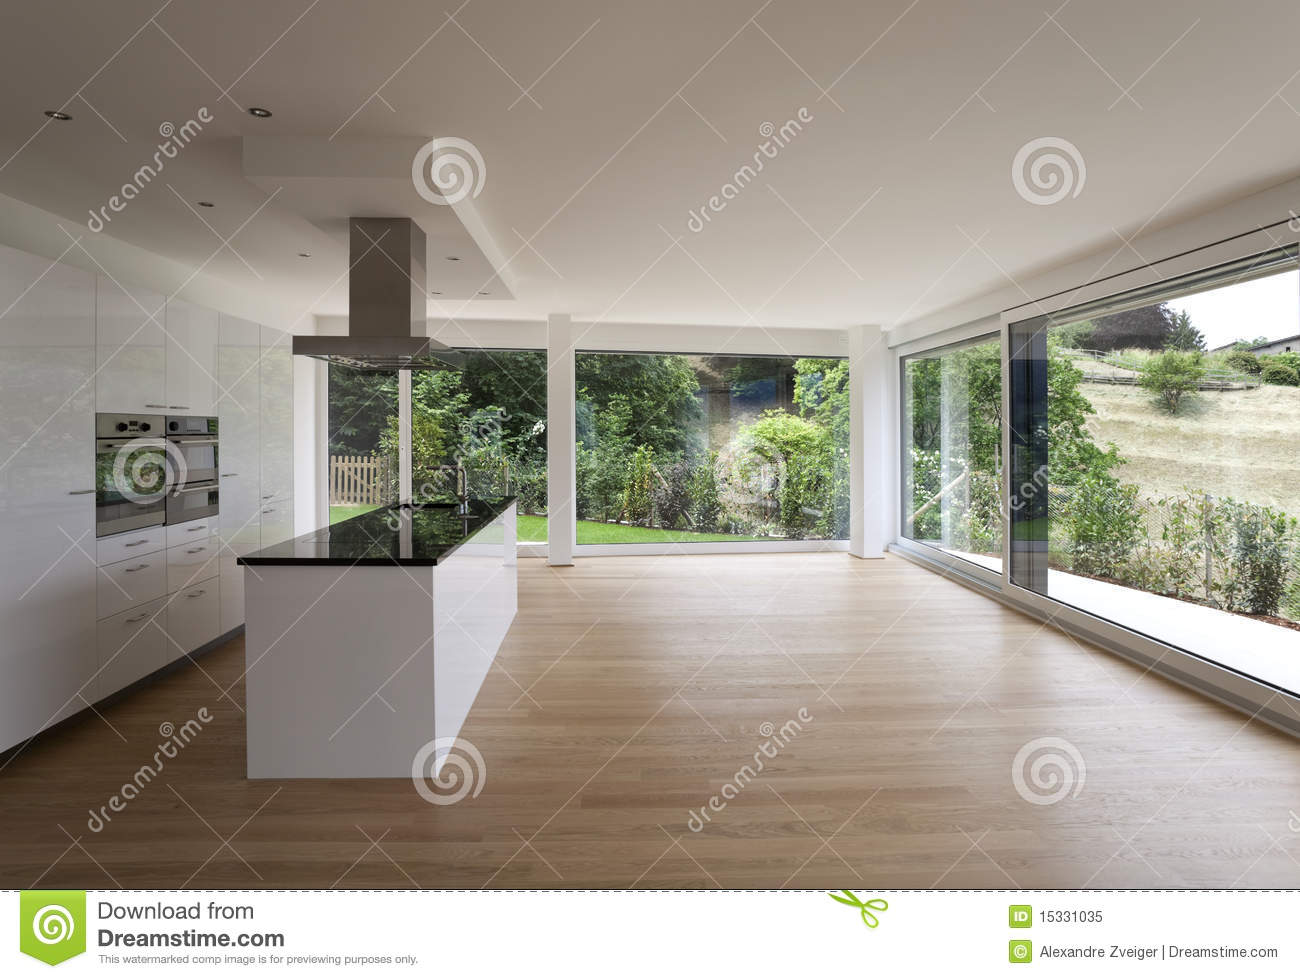 Bel int rieur d 39 une maison moderne photo libre de droits image 15331035 for Interieur d une maison